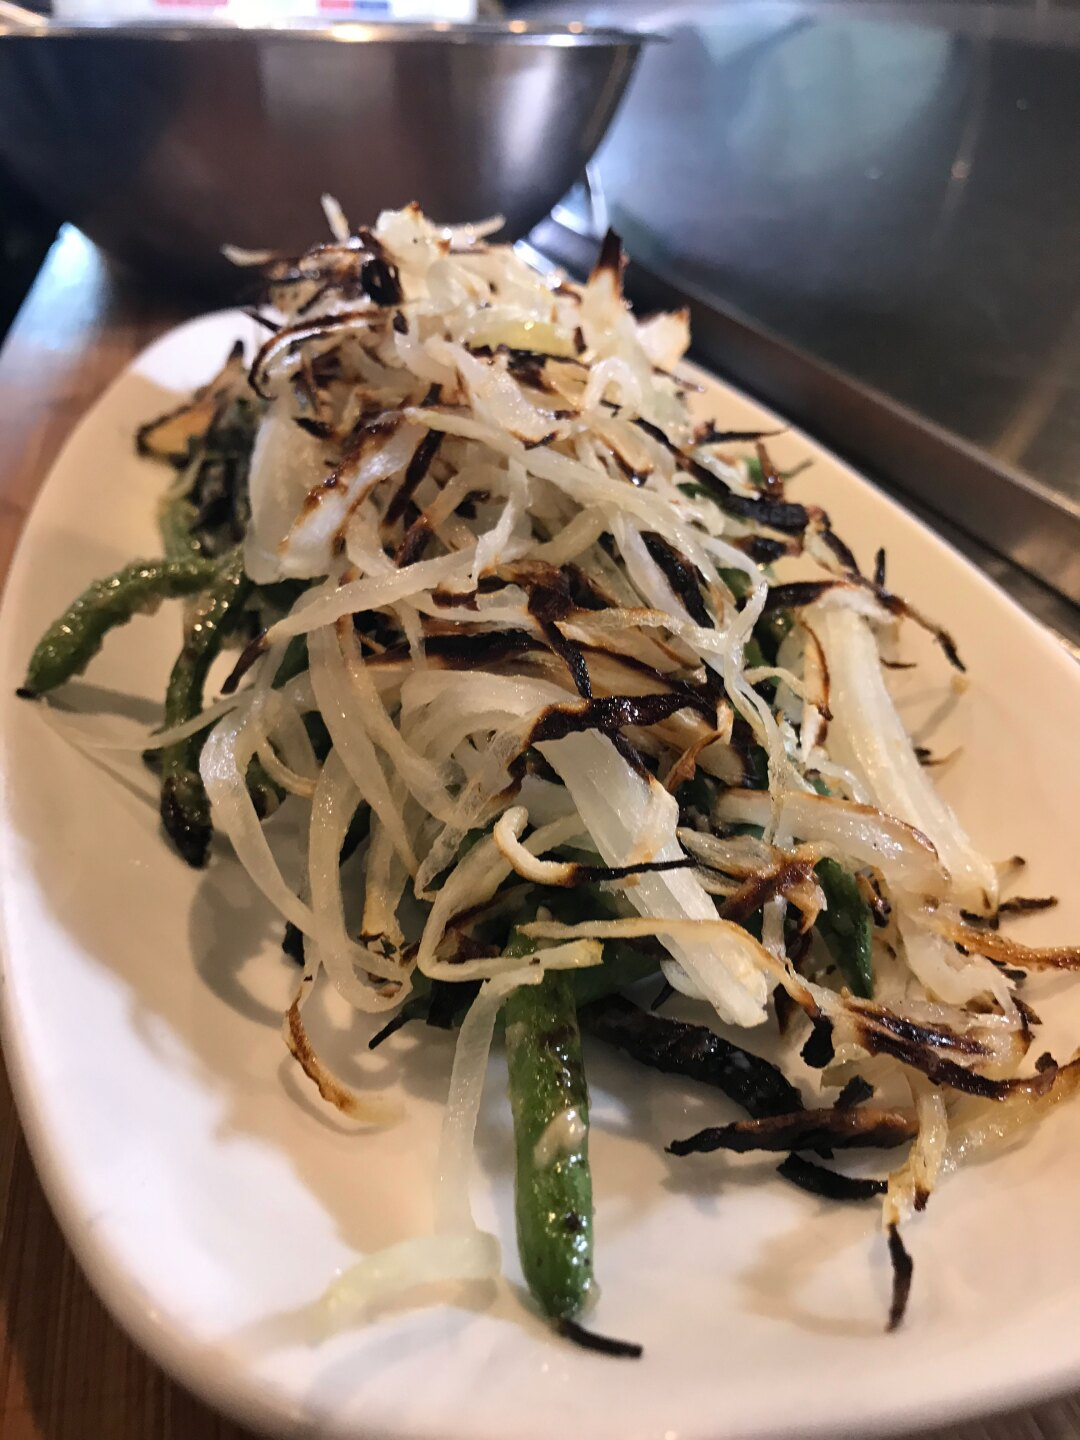 Coolinary Café's Healthy Green Bean Casserole by Chef Tim Lipman